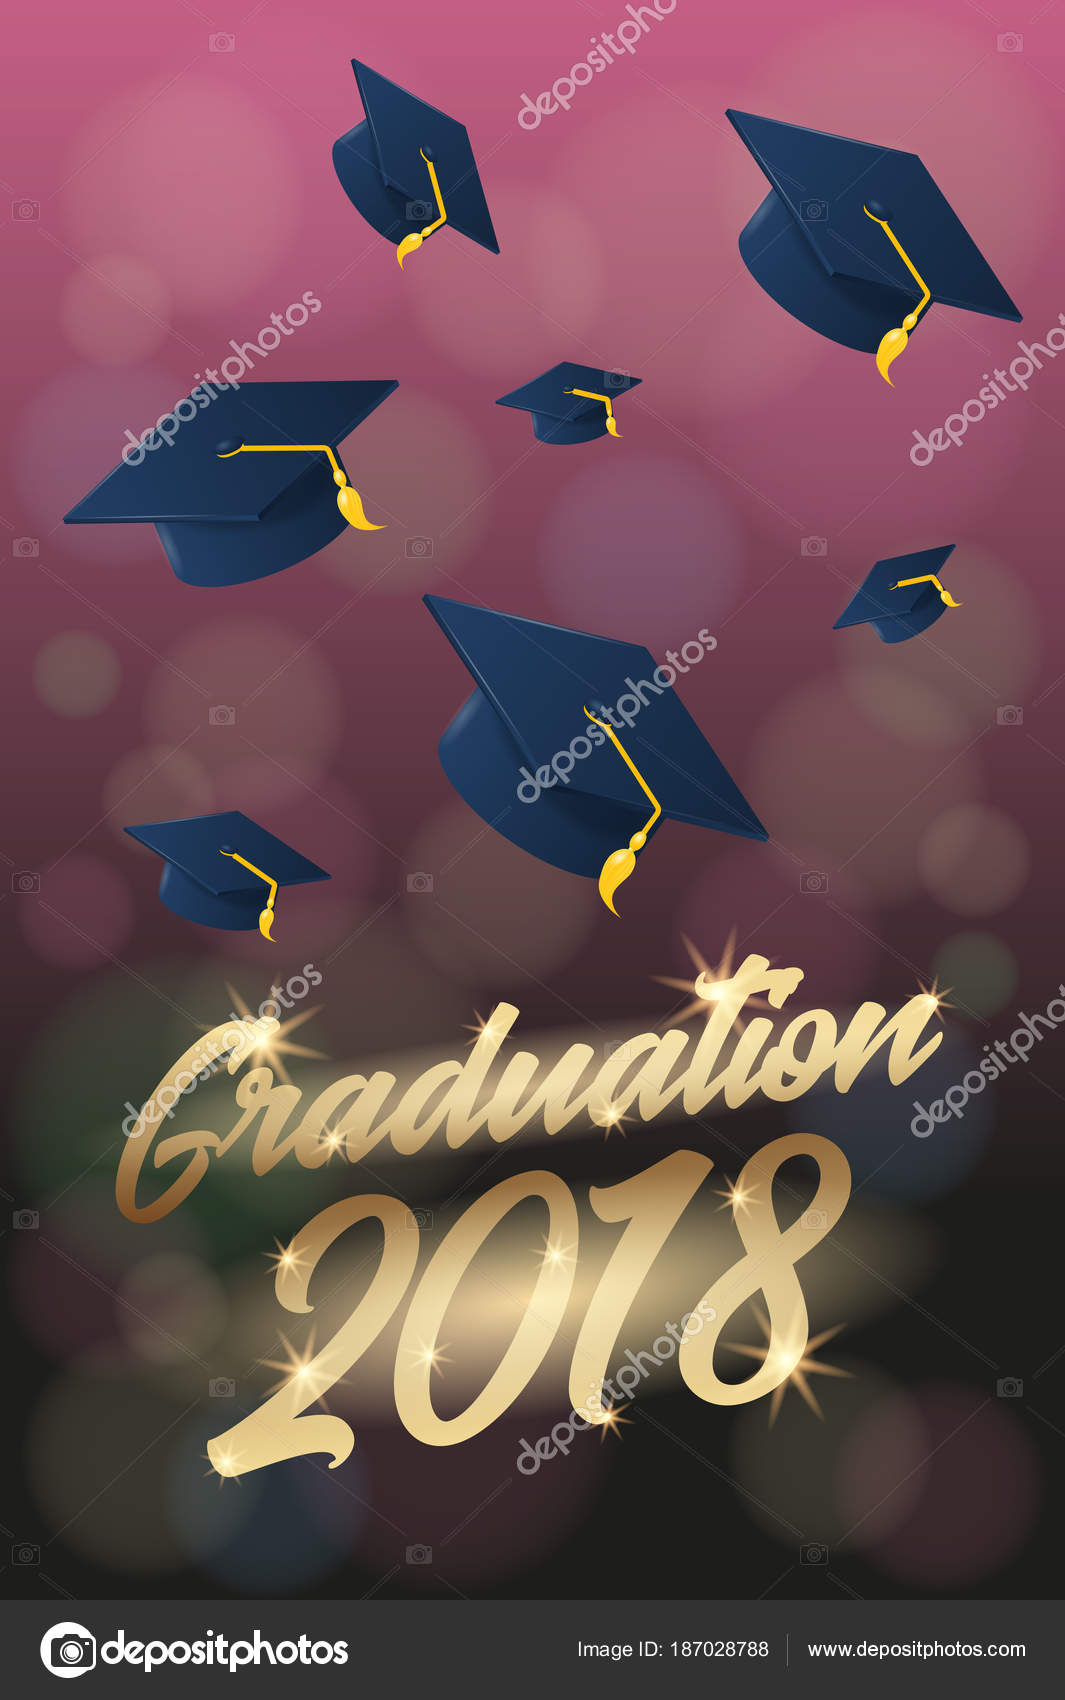 graduation 2018 poster or